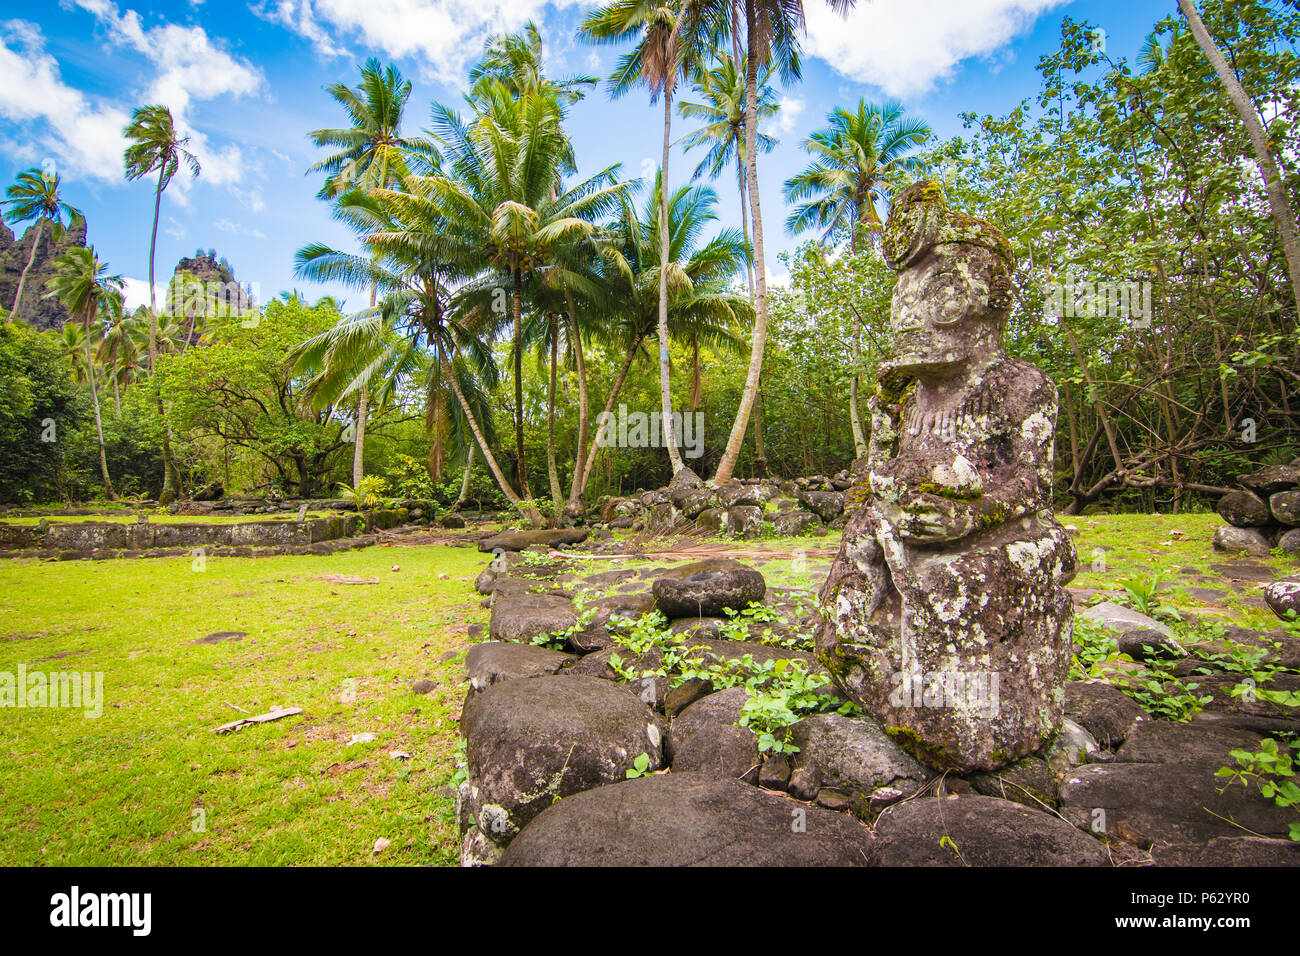 Sculpture At Hikokua Archeological Site, Nuku Hiva, Marquesas Archipelago, French Polynesia - Stock Image